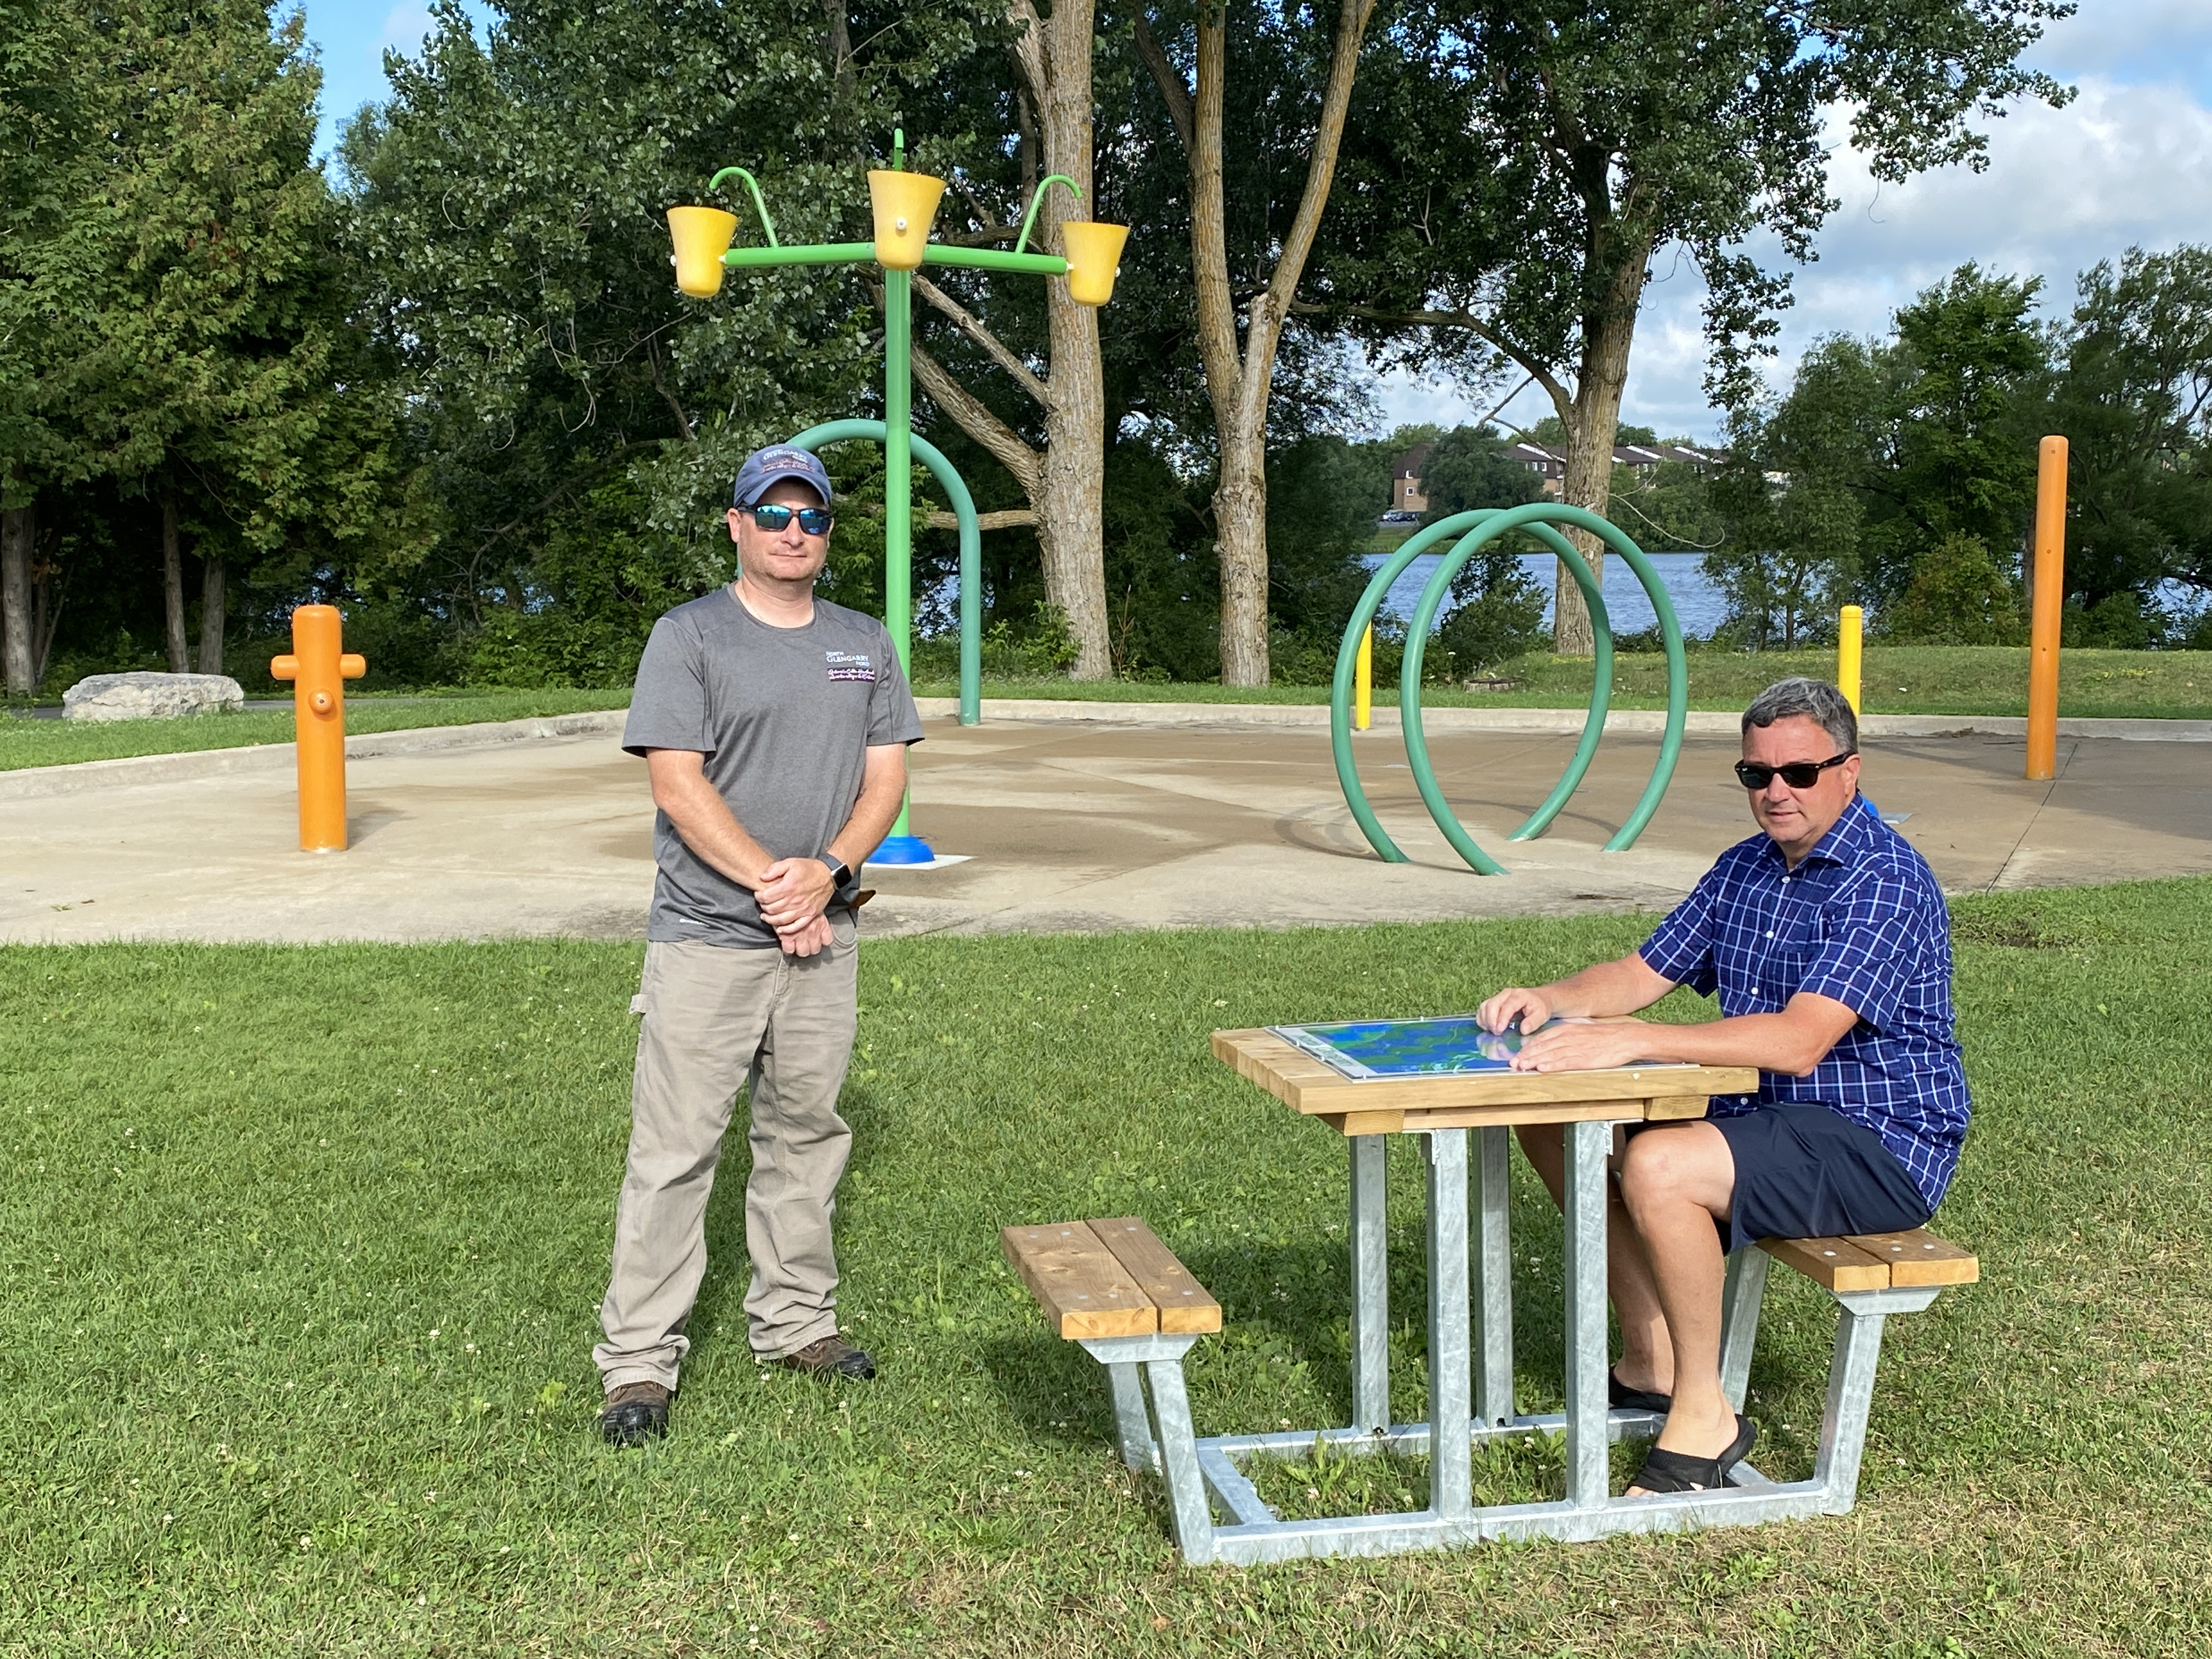 A new mini picnic table at Island Park features an integrated chess board